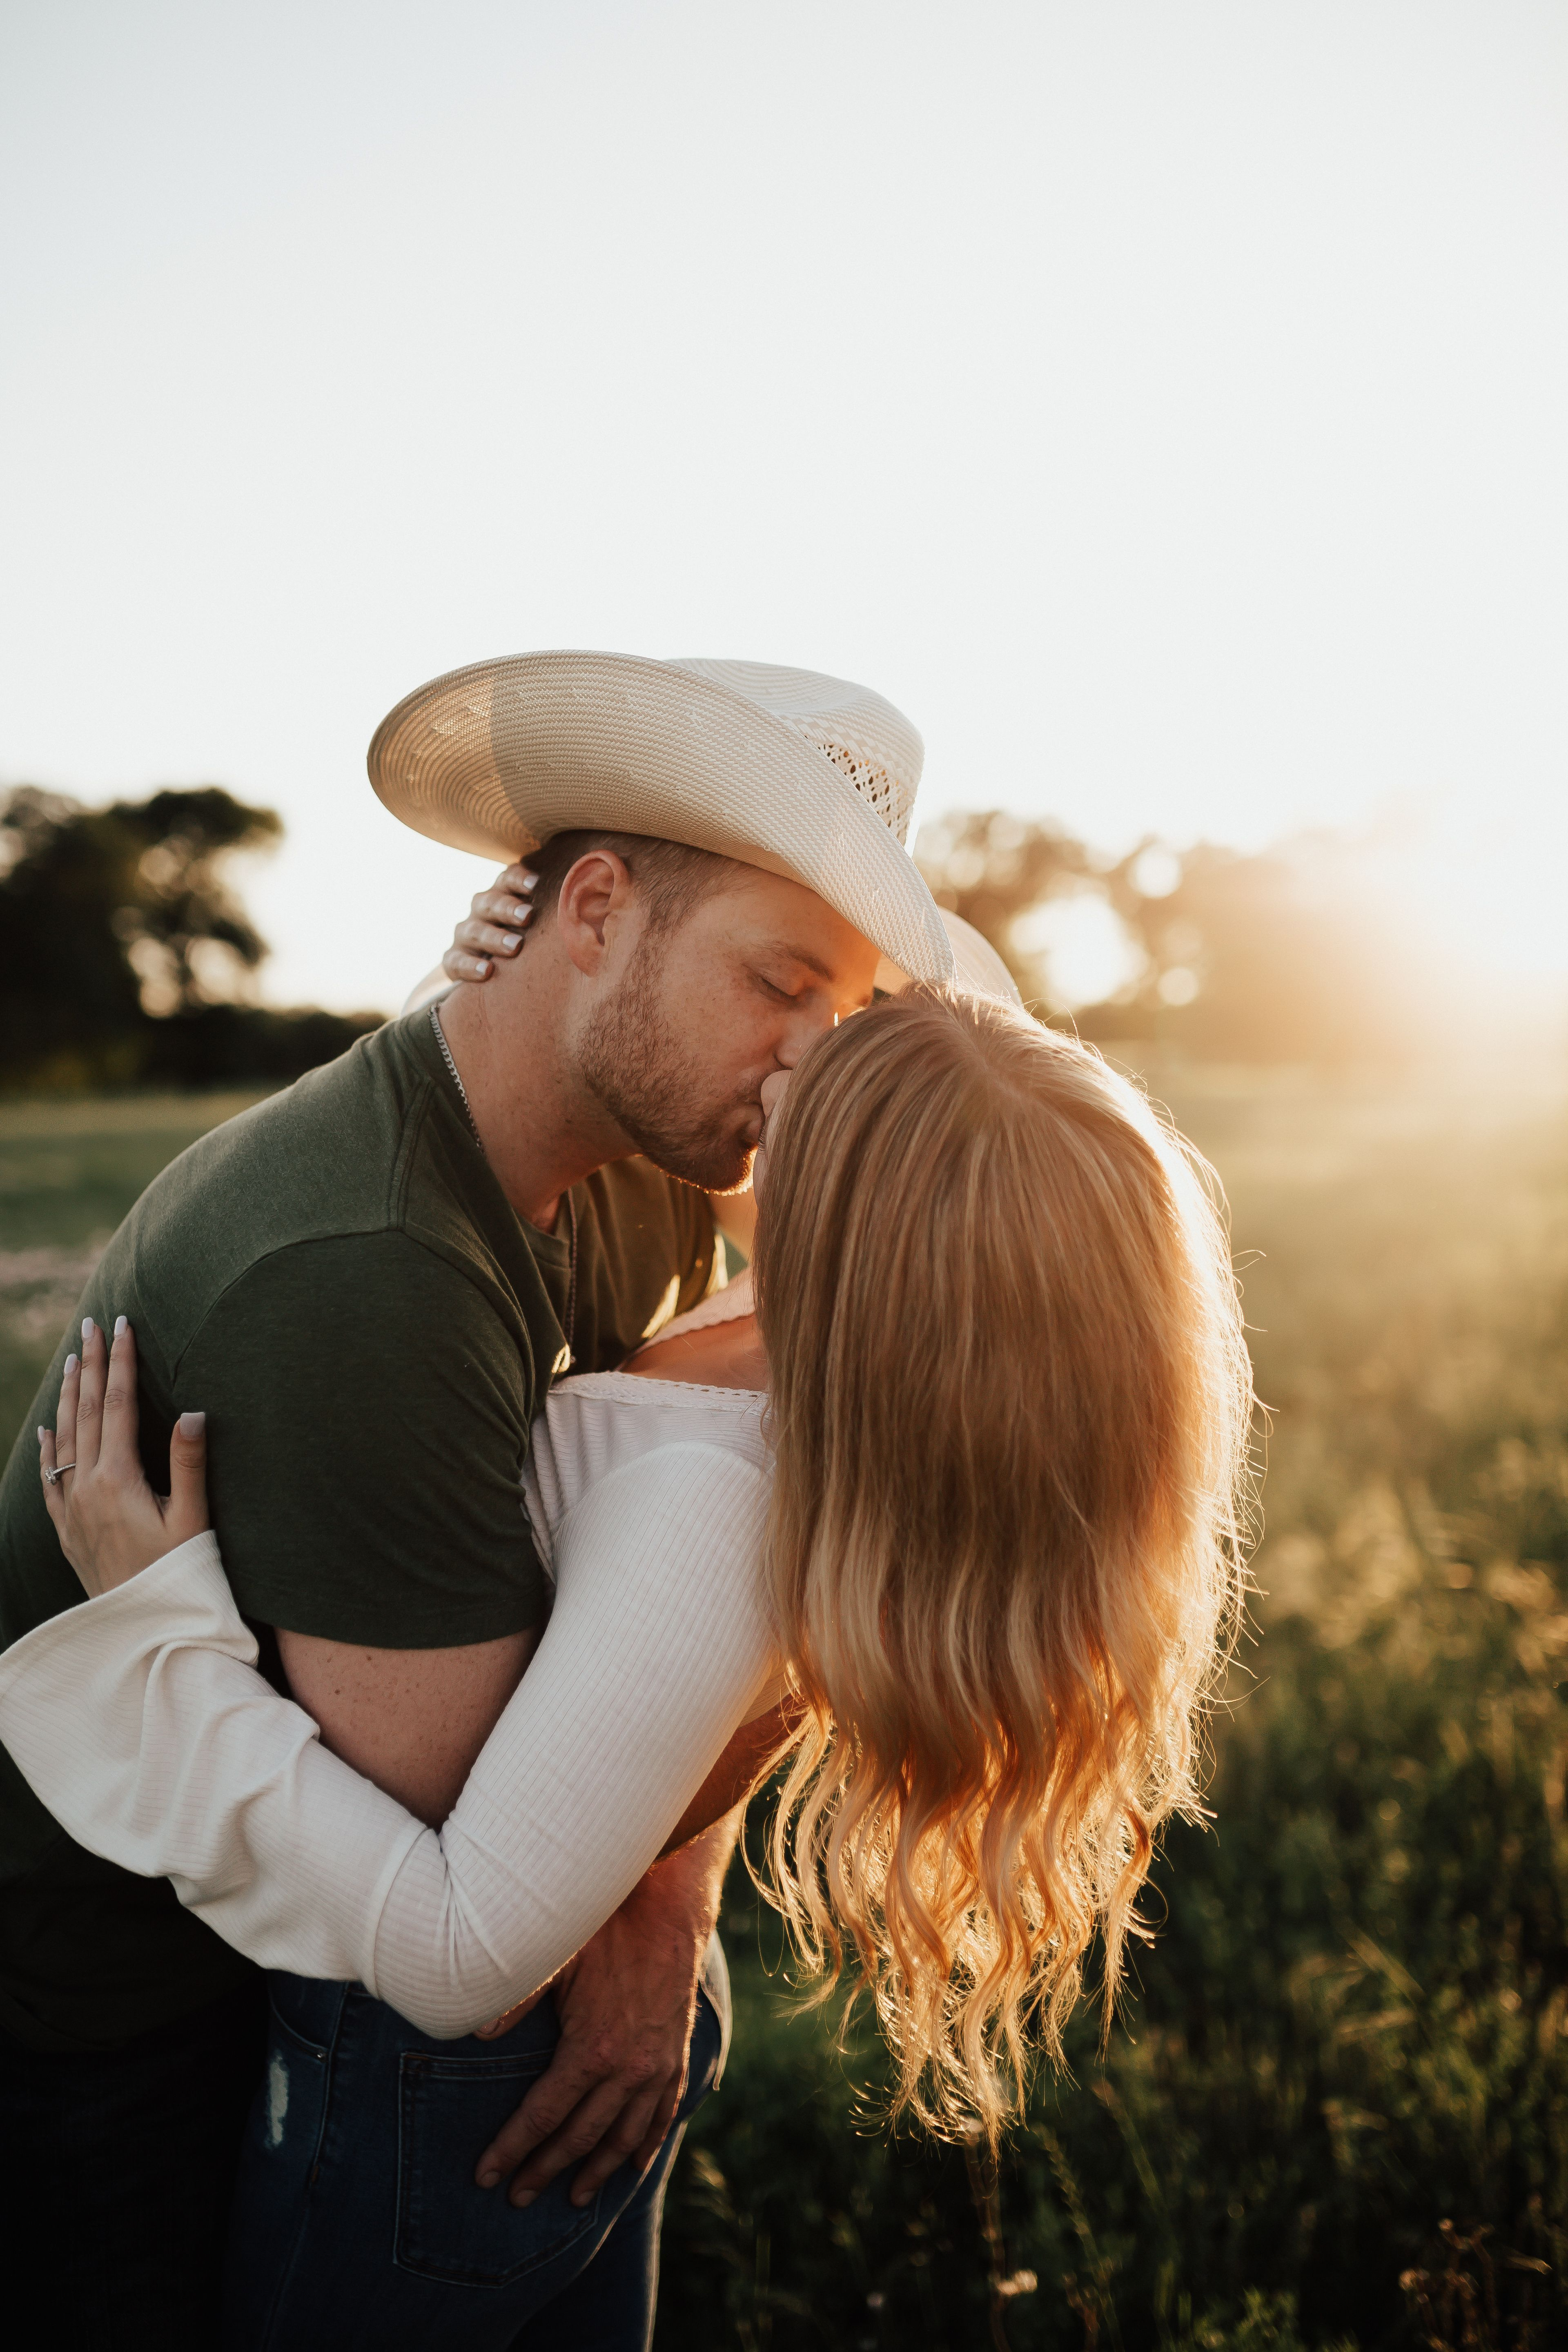 Texas Sunset Engagement Session // Country Couple -  Loved shooting with this gorgeous western couple out in a random field near our Texas Ranch. #field - #COUNTRY #couple #Engagement #EngagementPhotosafricanamerican #EngagementPhotosbeach #EngagementPhotoscountry #EngagementPhotosfall #EngagementPhotosideas #EngagementPhotosoutfits #EngagementPhotosposes #EngagementPhotosspring #EngagementPhotoswinter #EngagementPhotoswithdog #Session #summerEngagementPhotos #sunset #Texas #uniqueEngagementPho